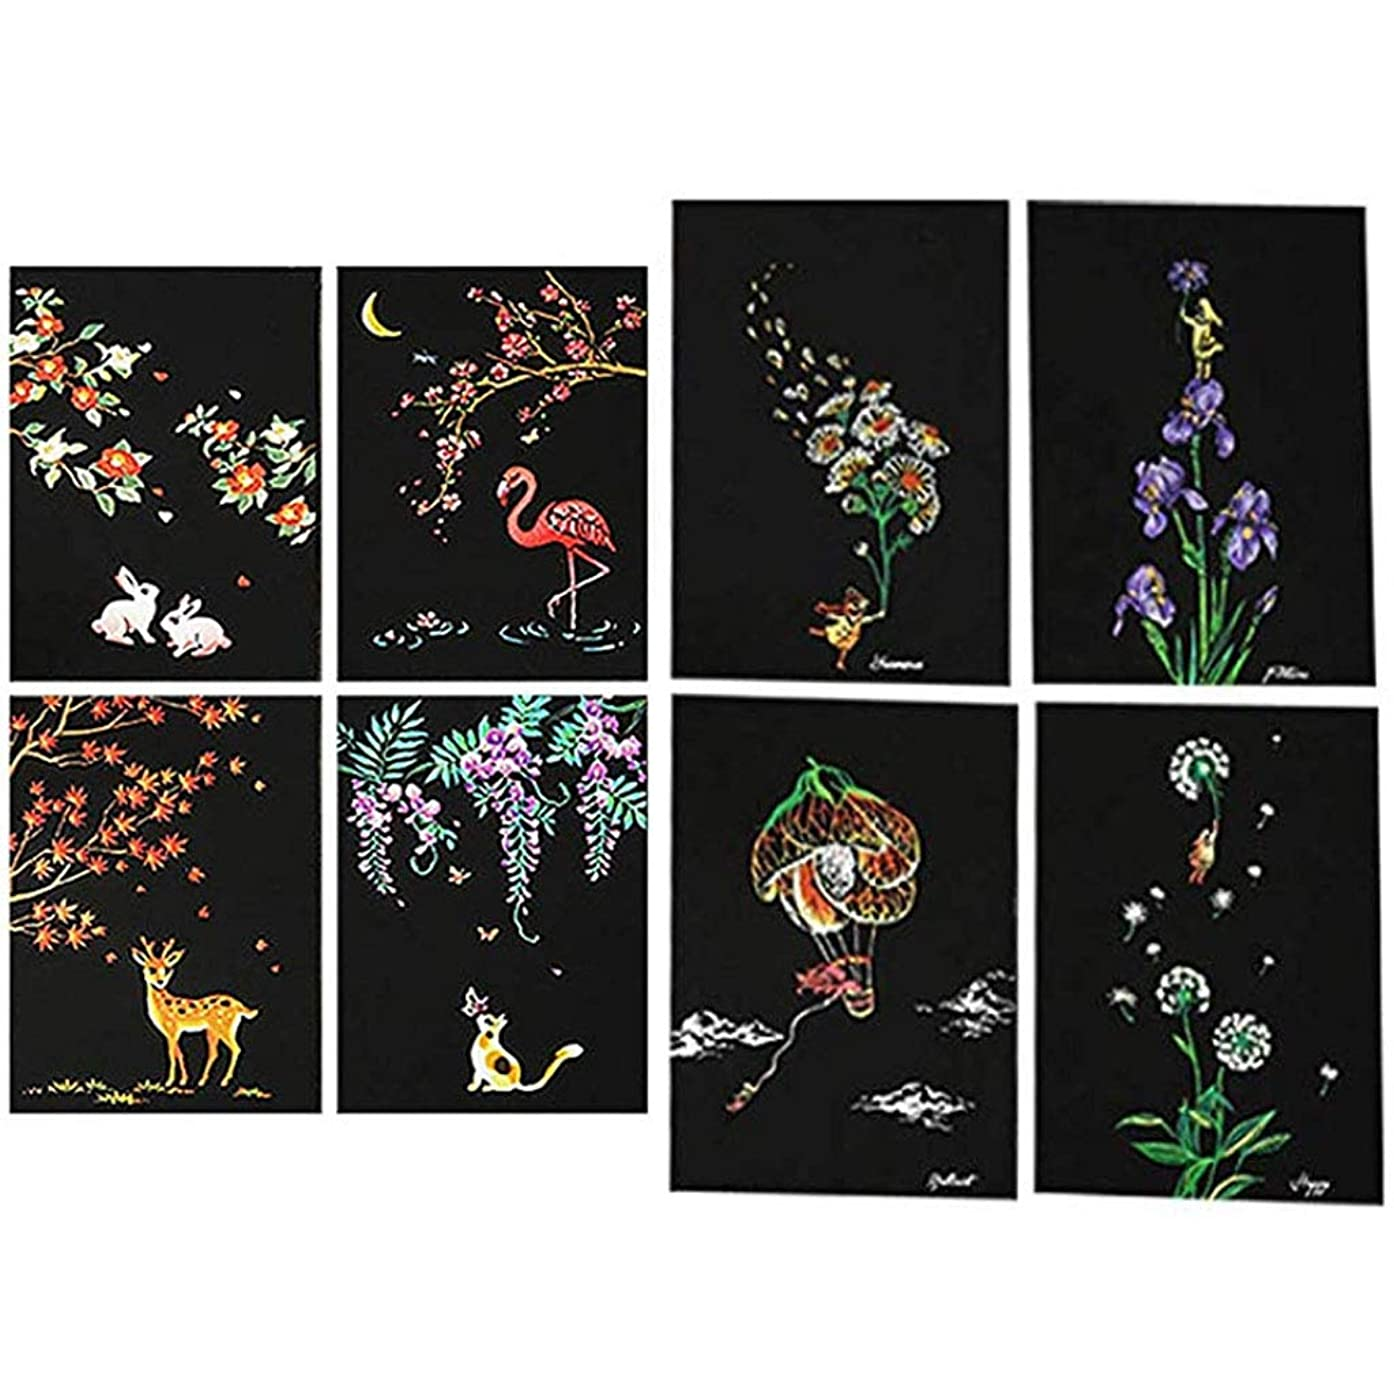 Eraimp Scratch Art Paper, Magic Color Scratch Art Painting, DIY Arts & Crafts, Rainbow Scratchboard Postcards for Kids and Adults with Drawing Stick (#B)